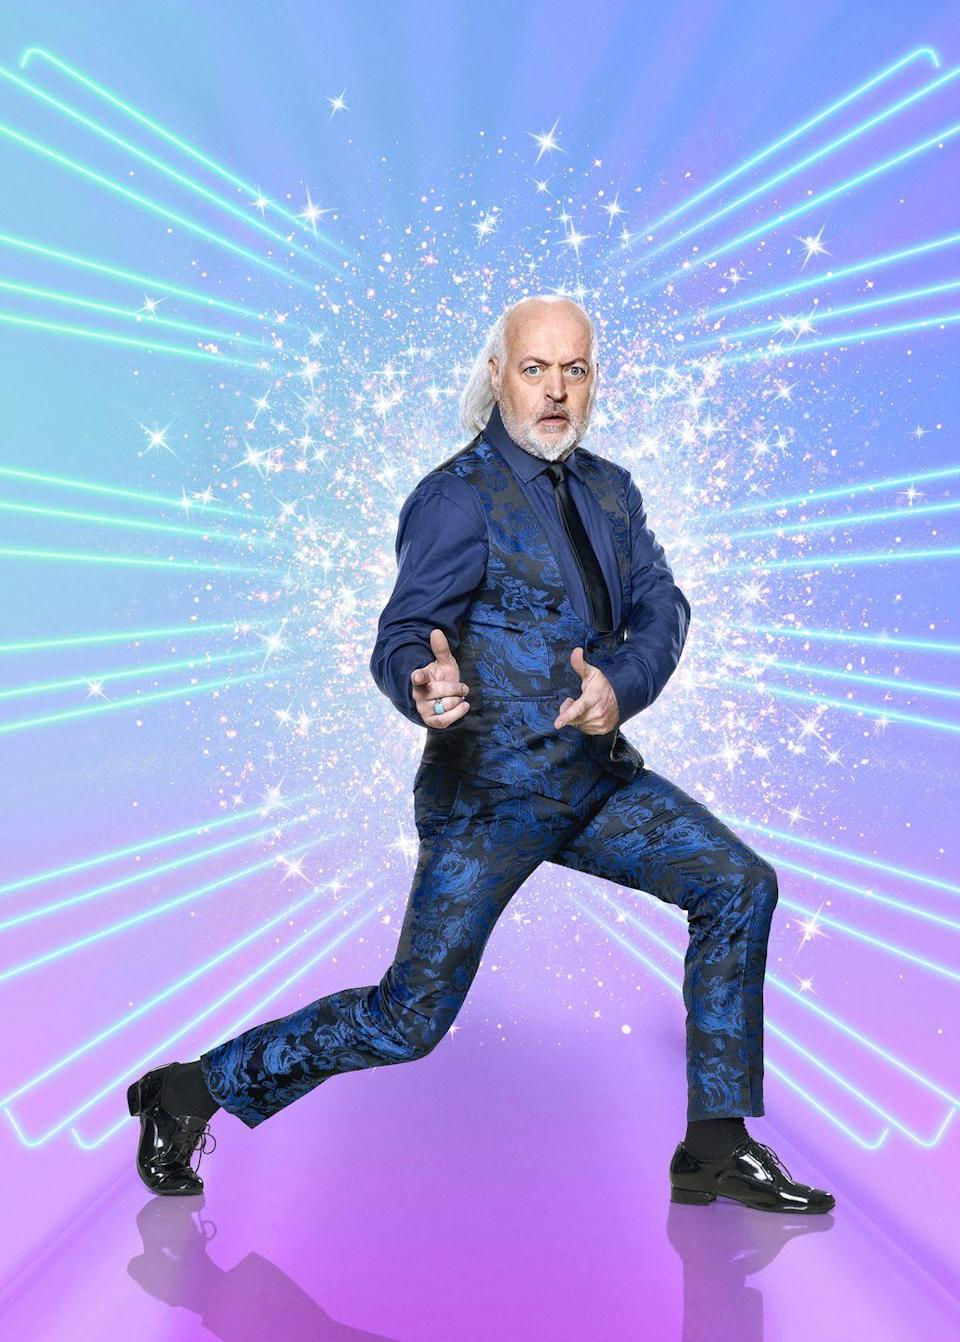 """<p><strong>Who is he? </strong>Bill Bailey, 55, is a comedian, musician and actor, who regularly appears on Never Mind the Buzzcocks, Have I Got News for You and QI.</p><p><strong>What's he said about Strictly? </strong>""""In these are strange times we're living through, it feels right to do something different and take on a new challenge,"""" he said. """"So I am delighted to be a part of this year's unique Strictly Come Dancing. My late mum Madrin would have loved it - I hope she'll be watching.""""</p>"""